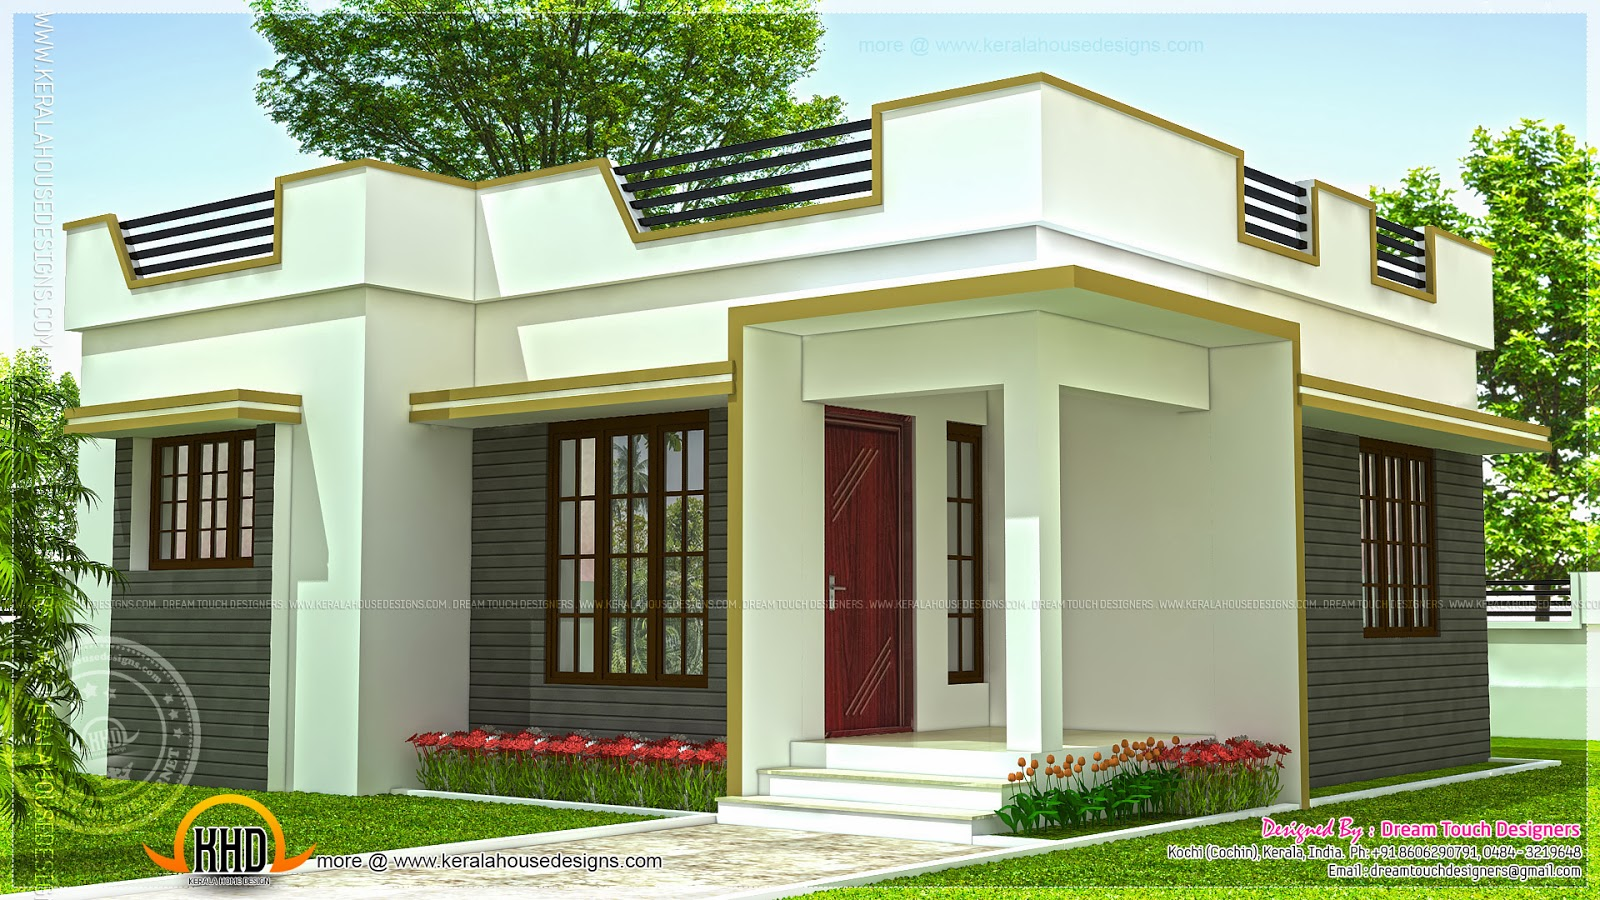 New Model Of House Design Tamilnaduhouseplans1000Sqftl373Ca2E589F80Dea 1600×888 .